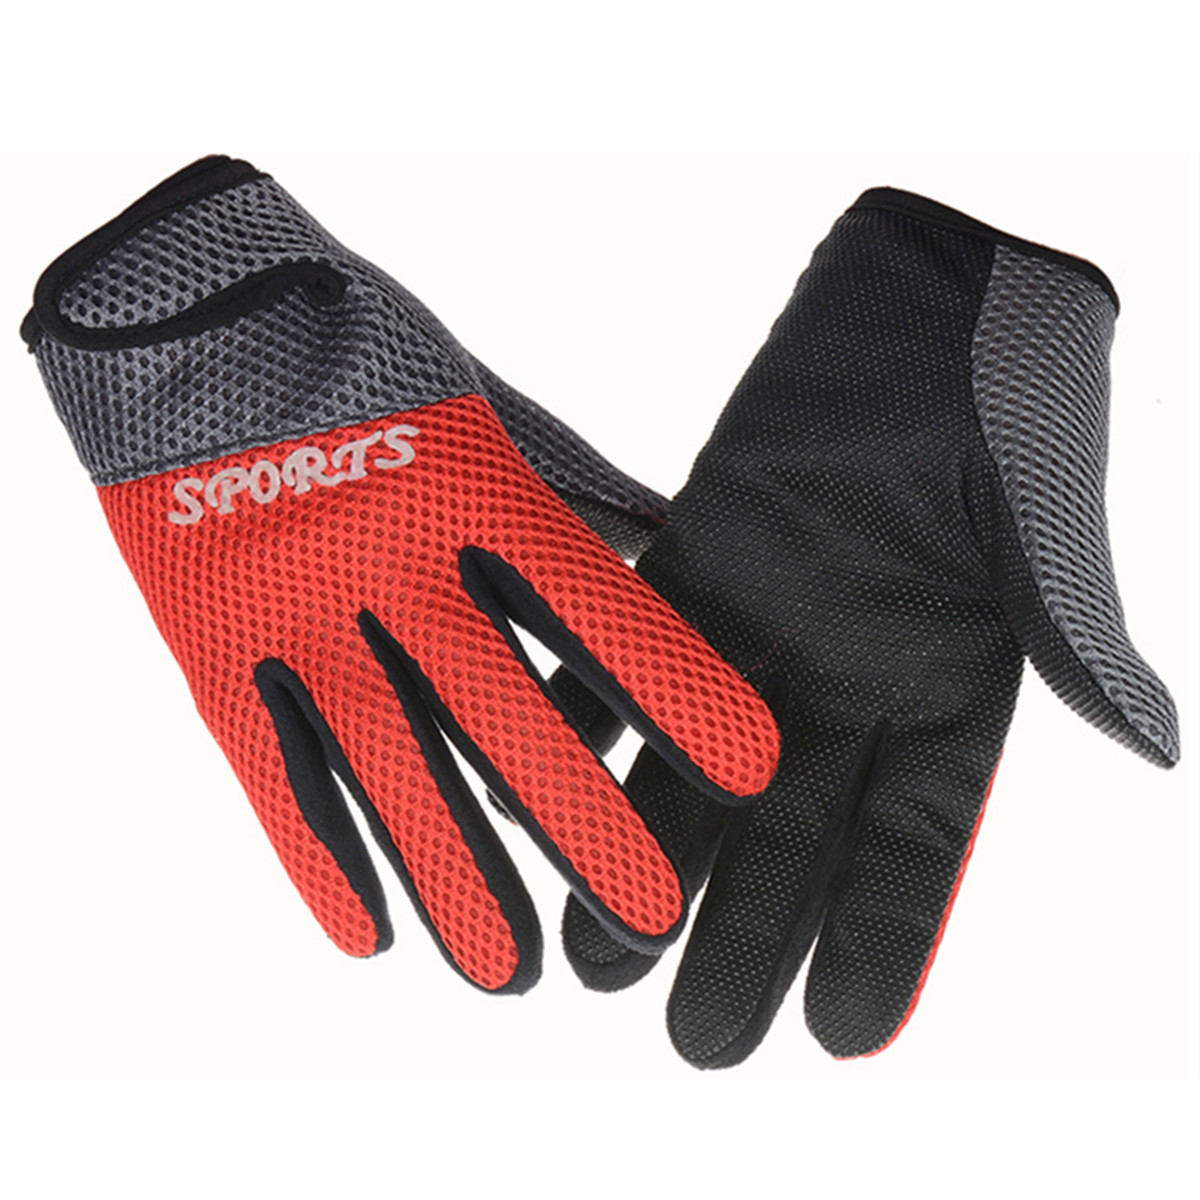 Anti-Slip Breathable Motorcycle Racing Sport Full Finger Gloves